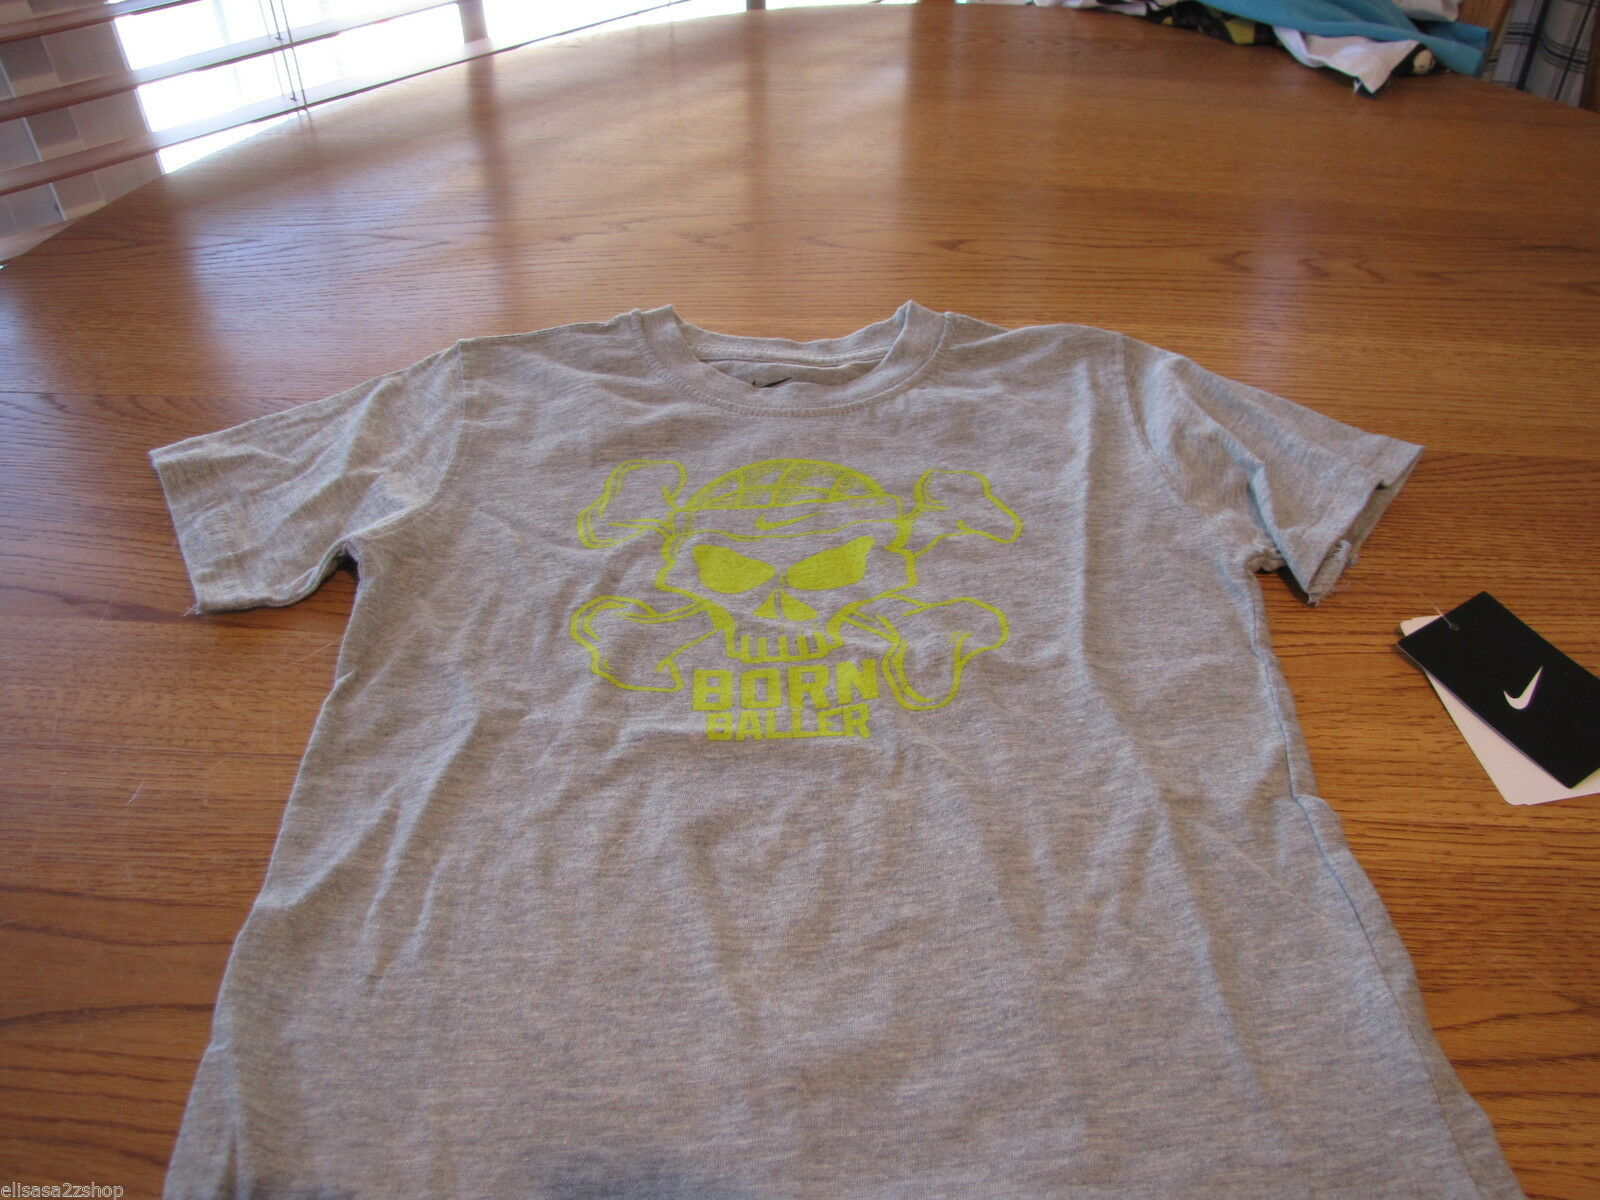 Boy's Youth 4T Nike born Baller smack talk sports grey T shirt TEE NEW NWT logo image 2